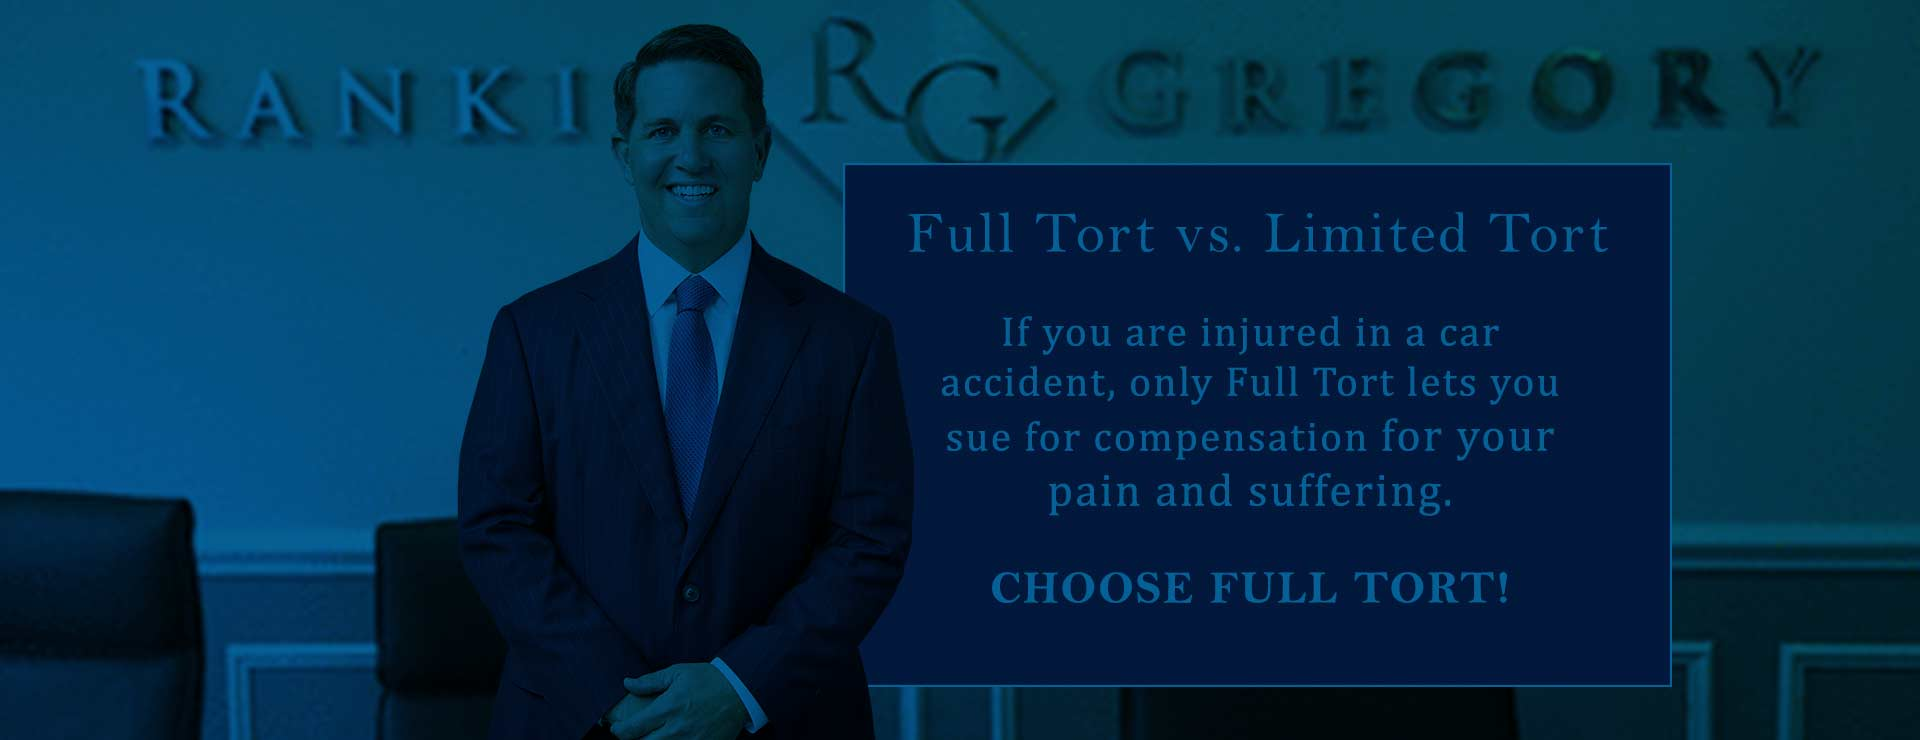 Rankin & Gregory Injury Law Firm - GET FULL TORT INSURANCE COVERAGE!